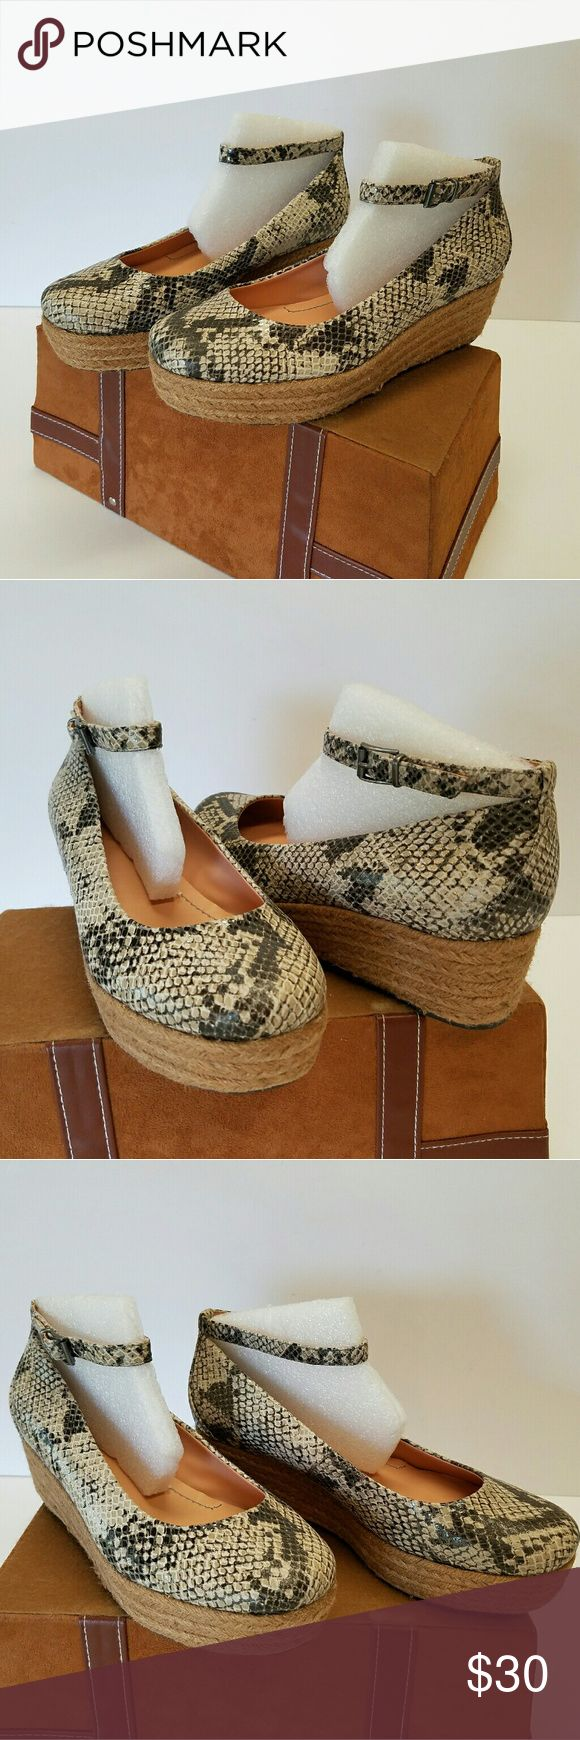 Reptile Design Espadrilles - Nicole I usually ship in 24 to 48 hours. Appear as New.  Good Looking Reptile design  Espadrilles.  Leather upper.  Padded Footbed.  Size 7.00 medium.  Black and  neutral. Nicole Shoes Espadrilles